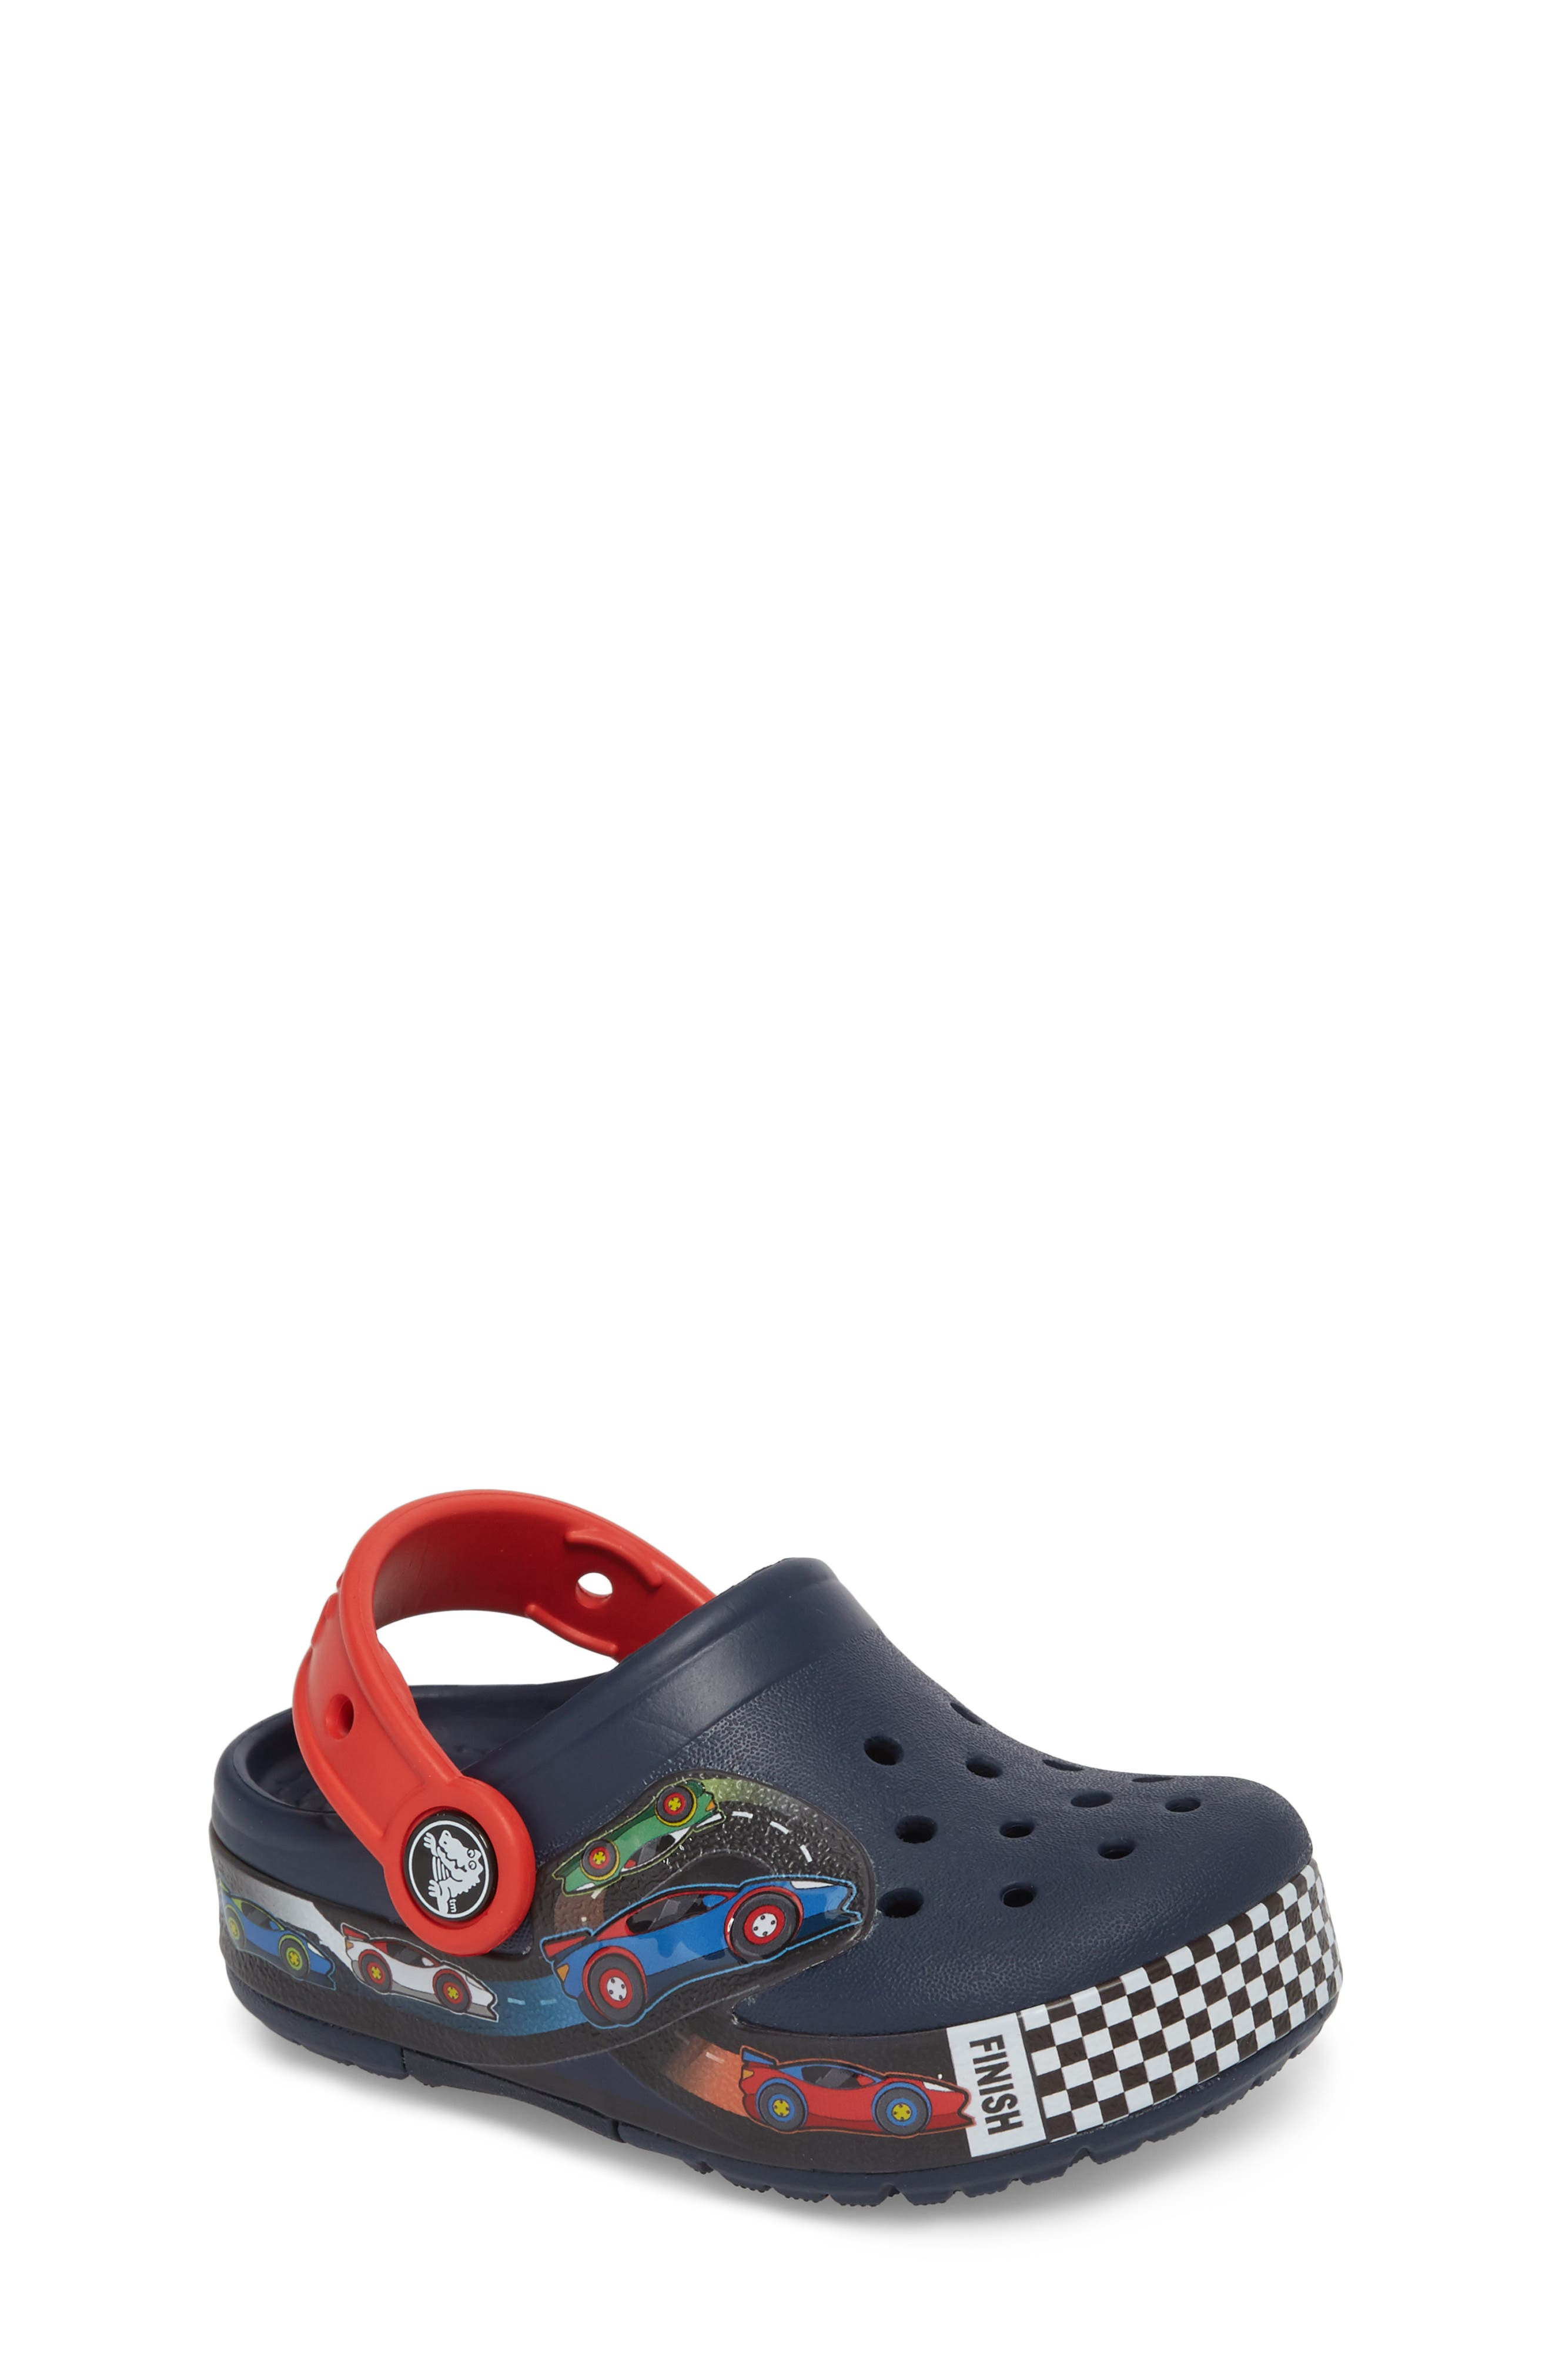 Crocband Fun Lab Light-Up Slip-On,                             Main thumbnail 1, color,                             Navy